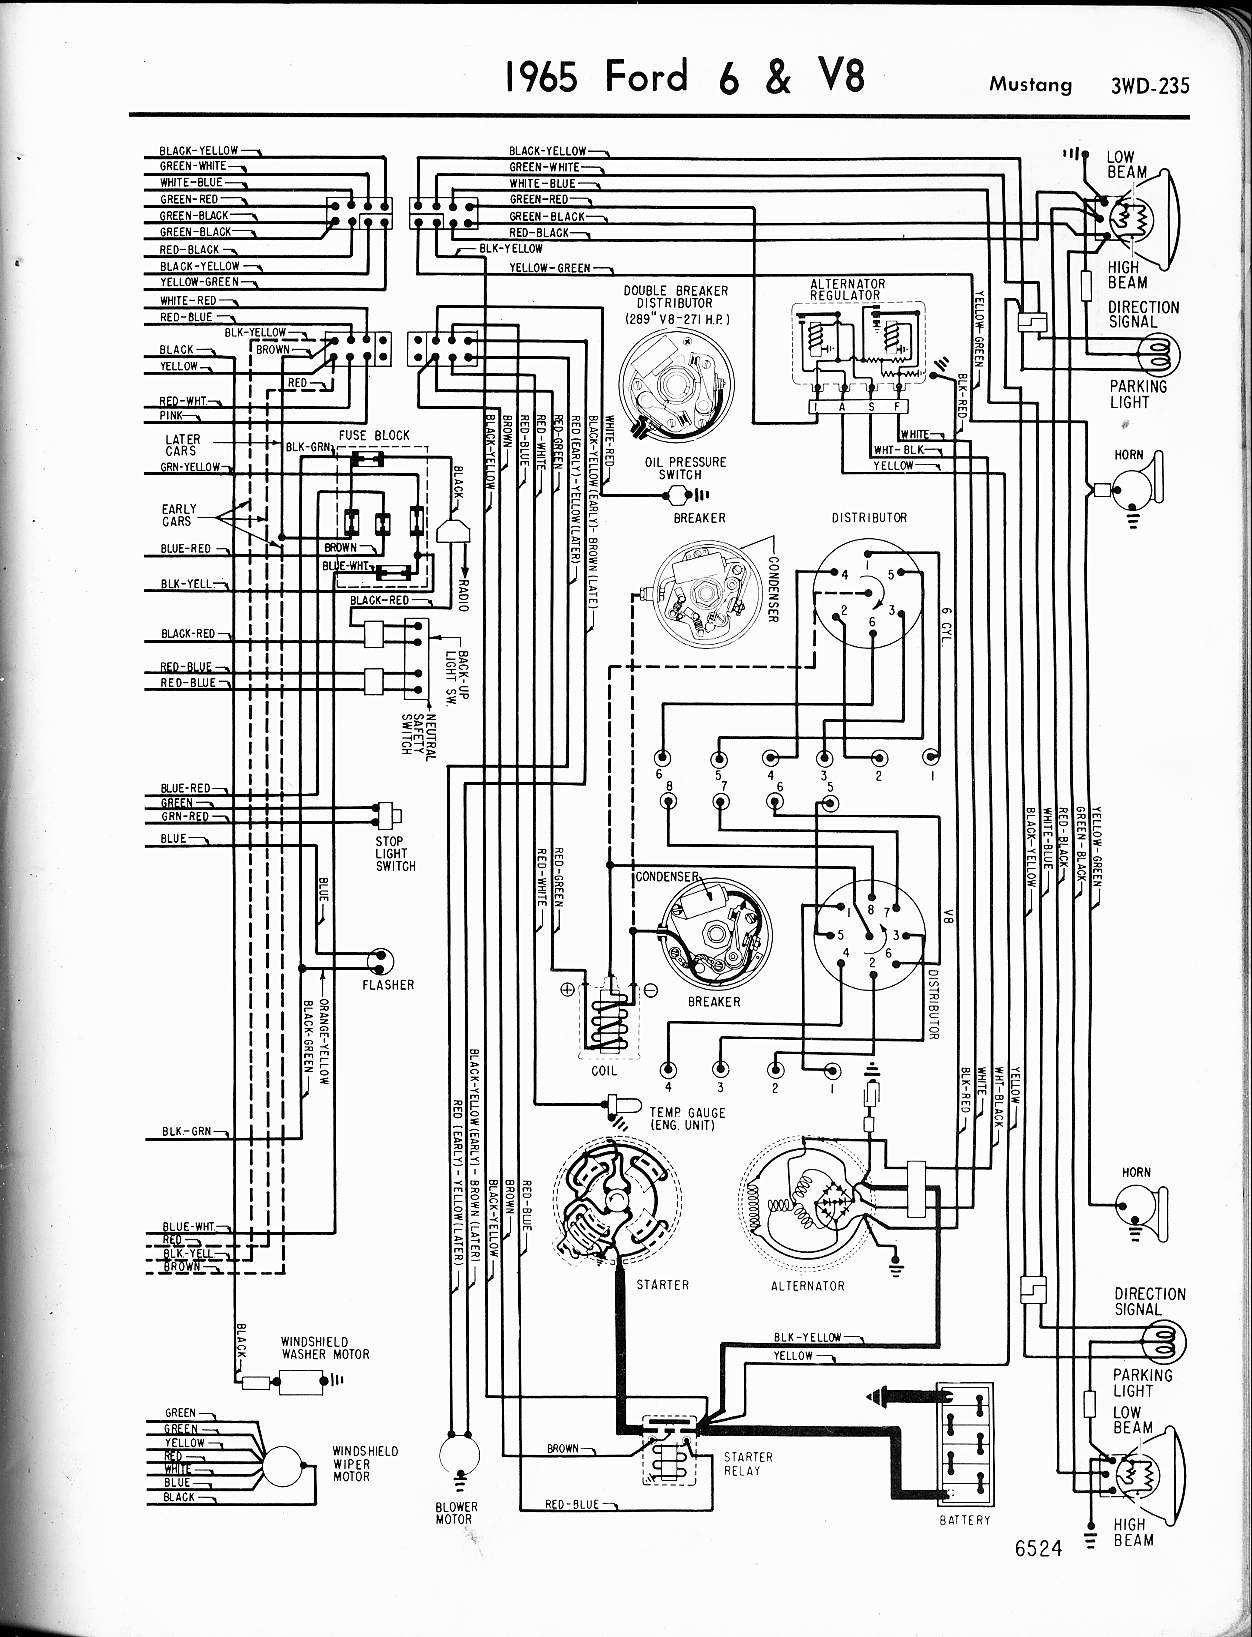 1965_mustang_wiring_2 ford diagrams old ford wiring harness at bayanpartner.co